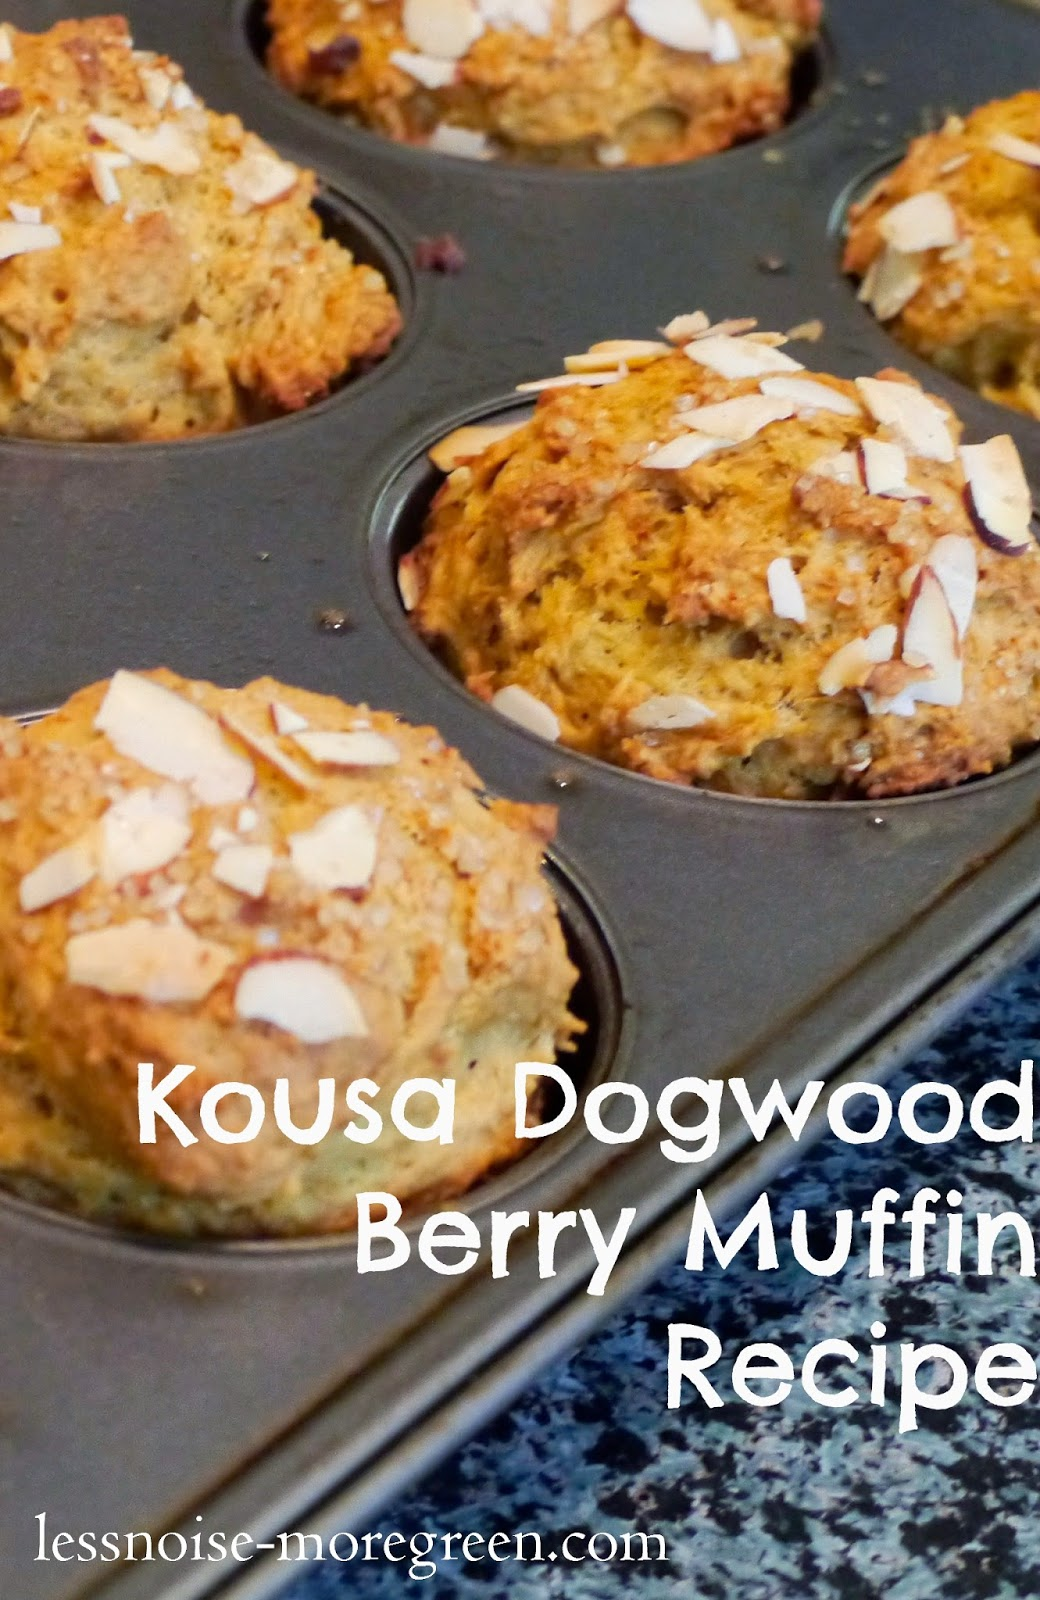 Kousa Dogwood Berry Muffin Recipe